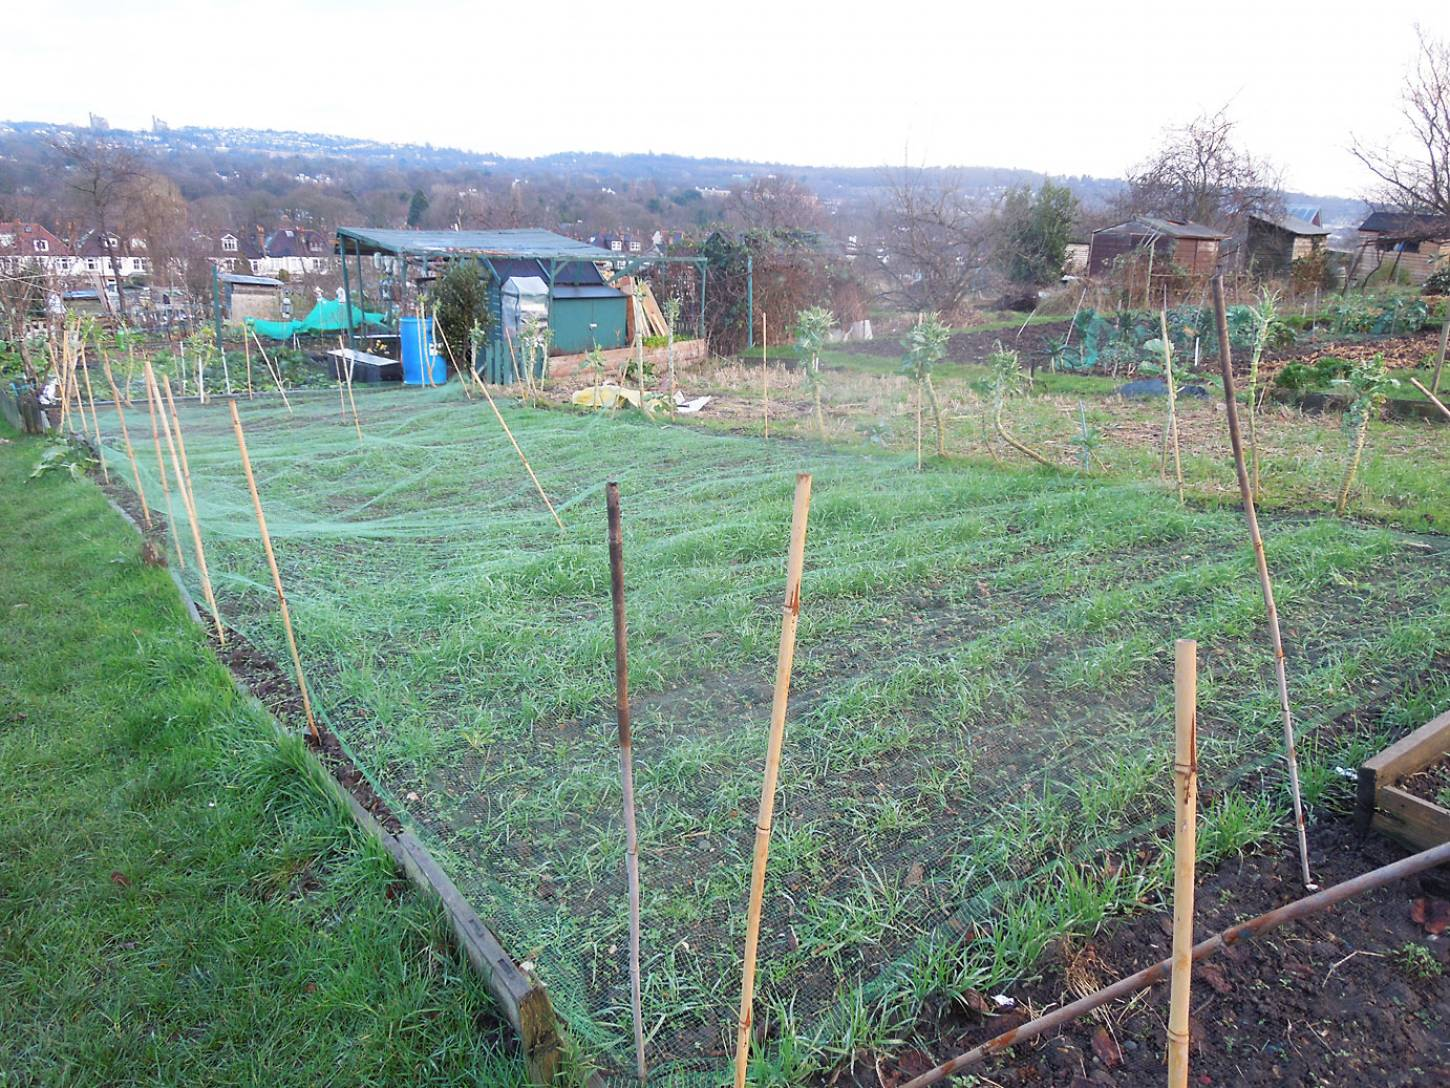 allotment review Jan. '17 - 4:09pm&nbsp;14<sup>th</sup>&nbsp;Jan.&nbsp;'17